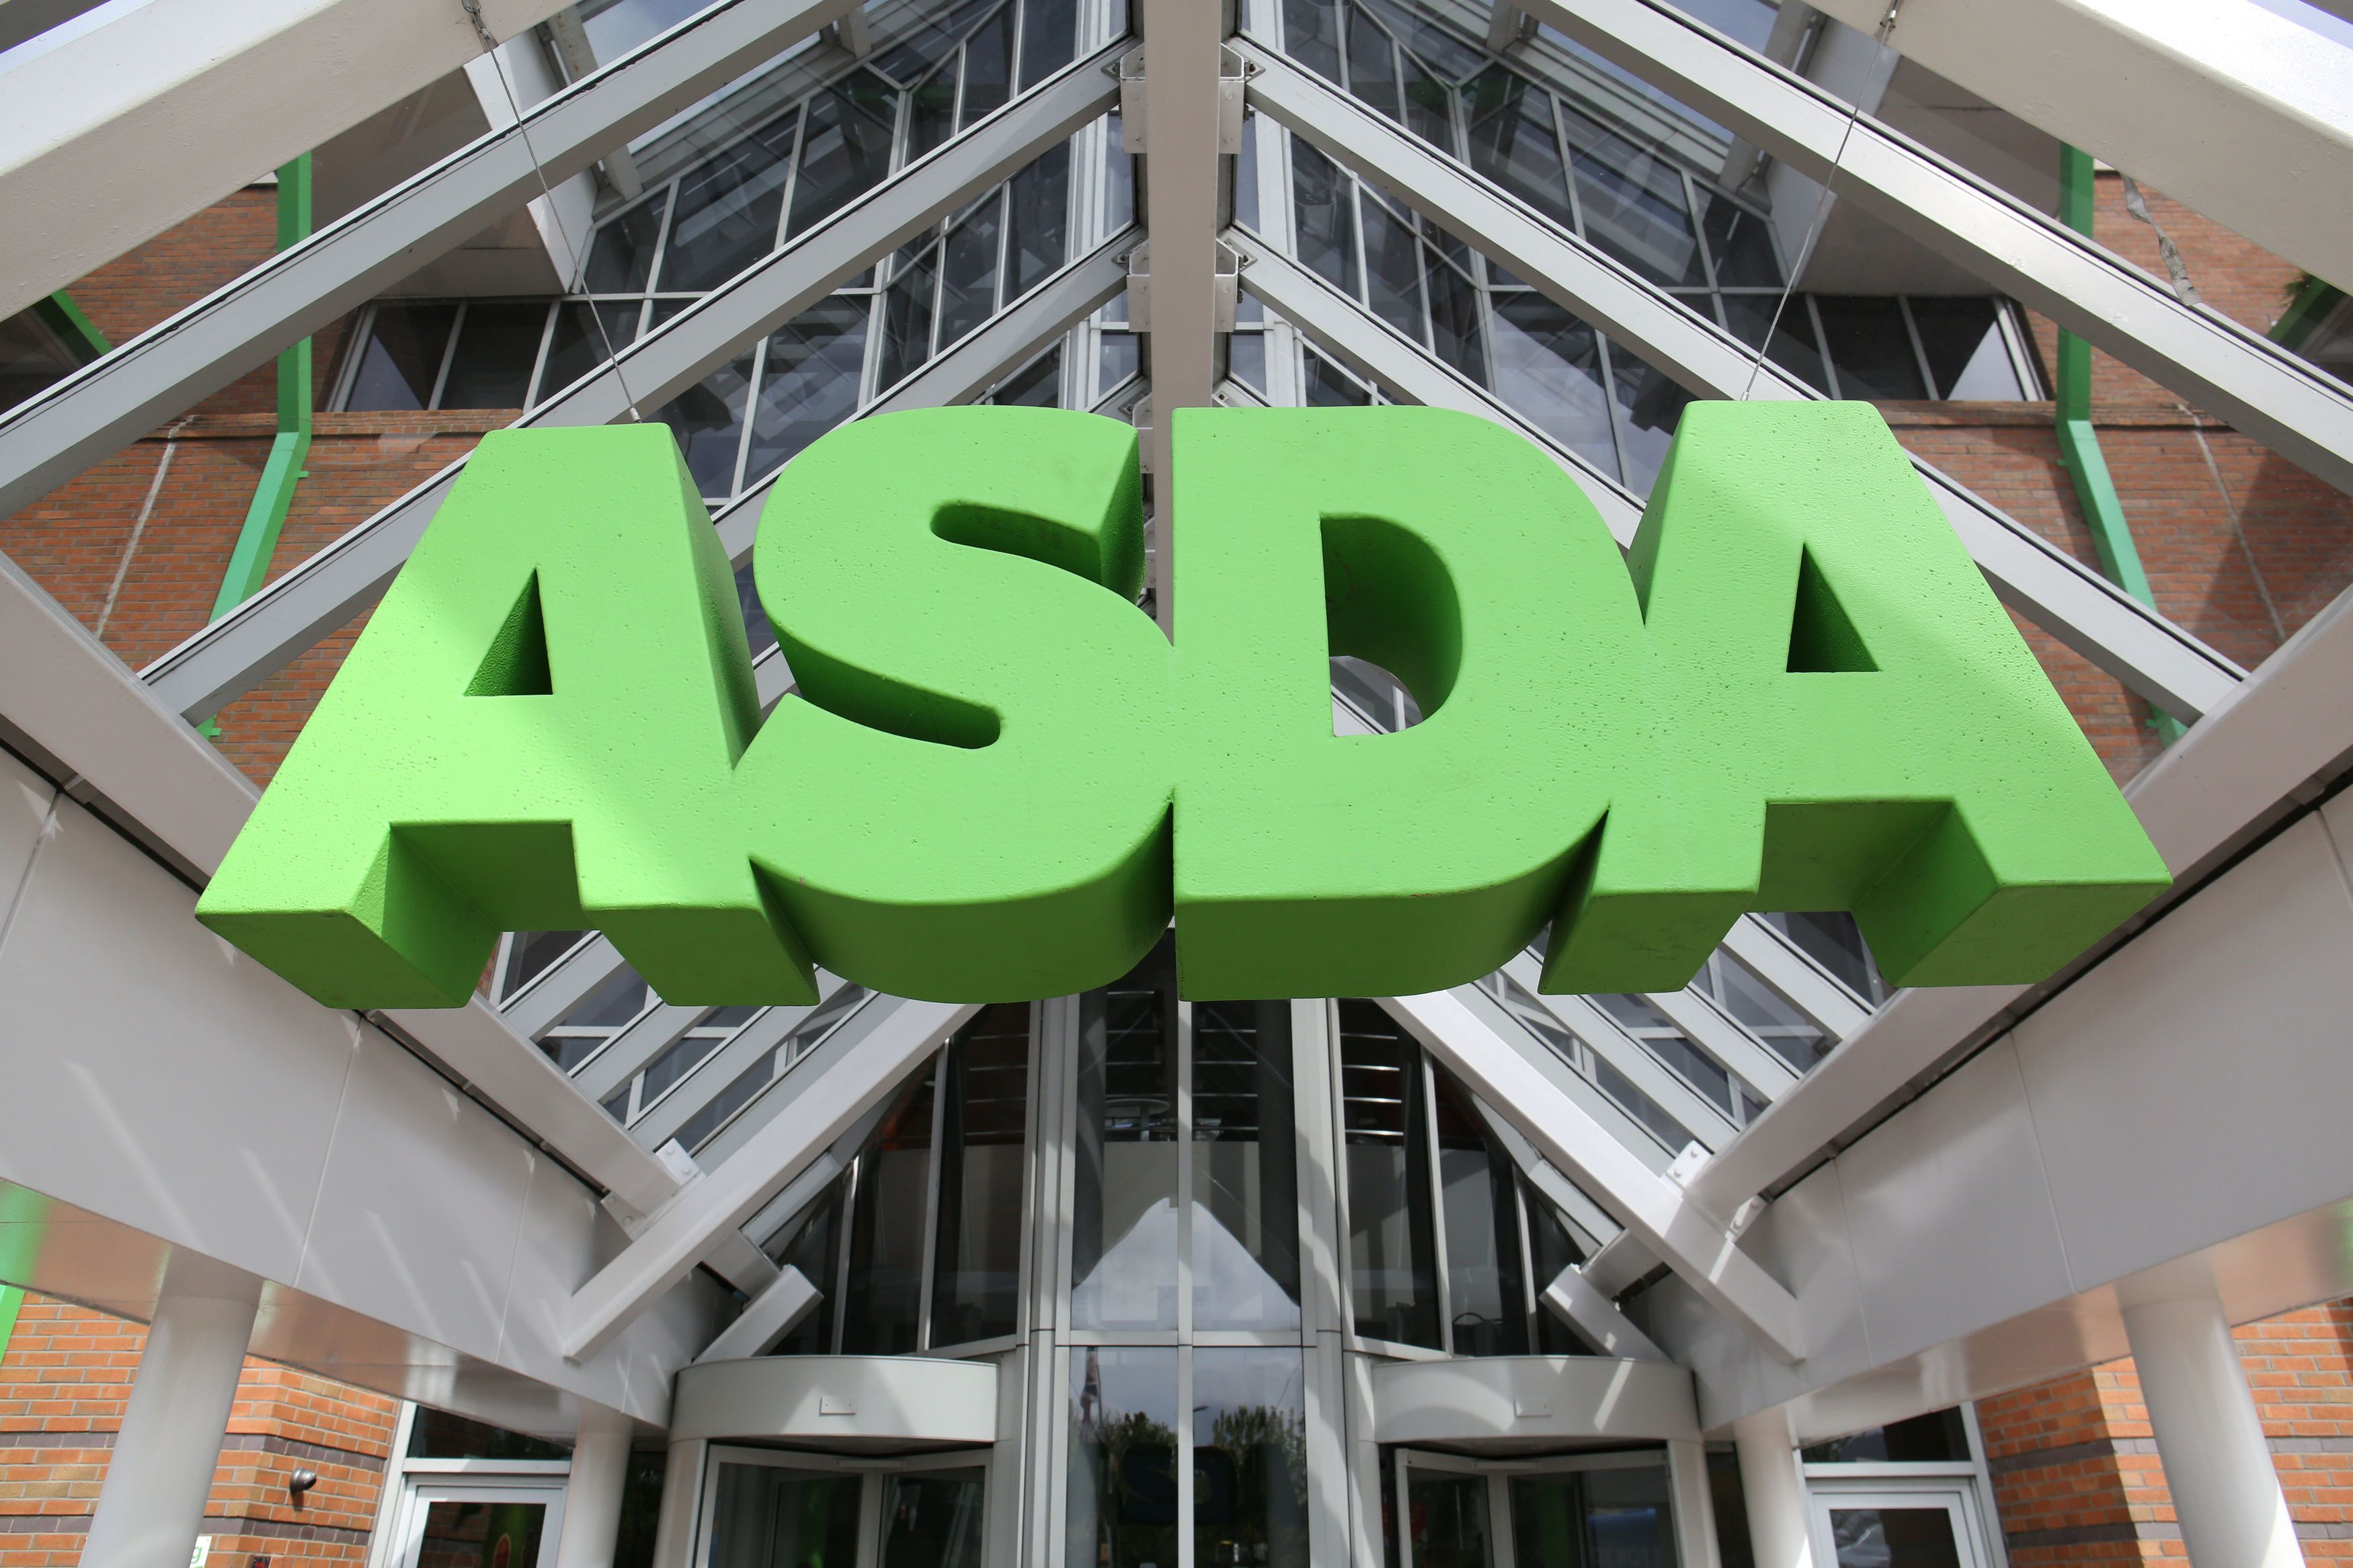 Asda has recalled a number of its products over fears they may contain